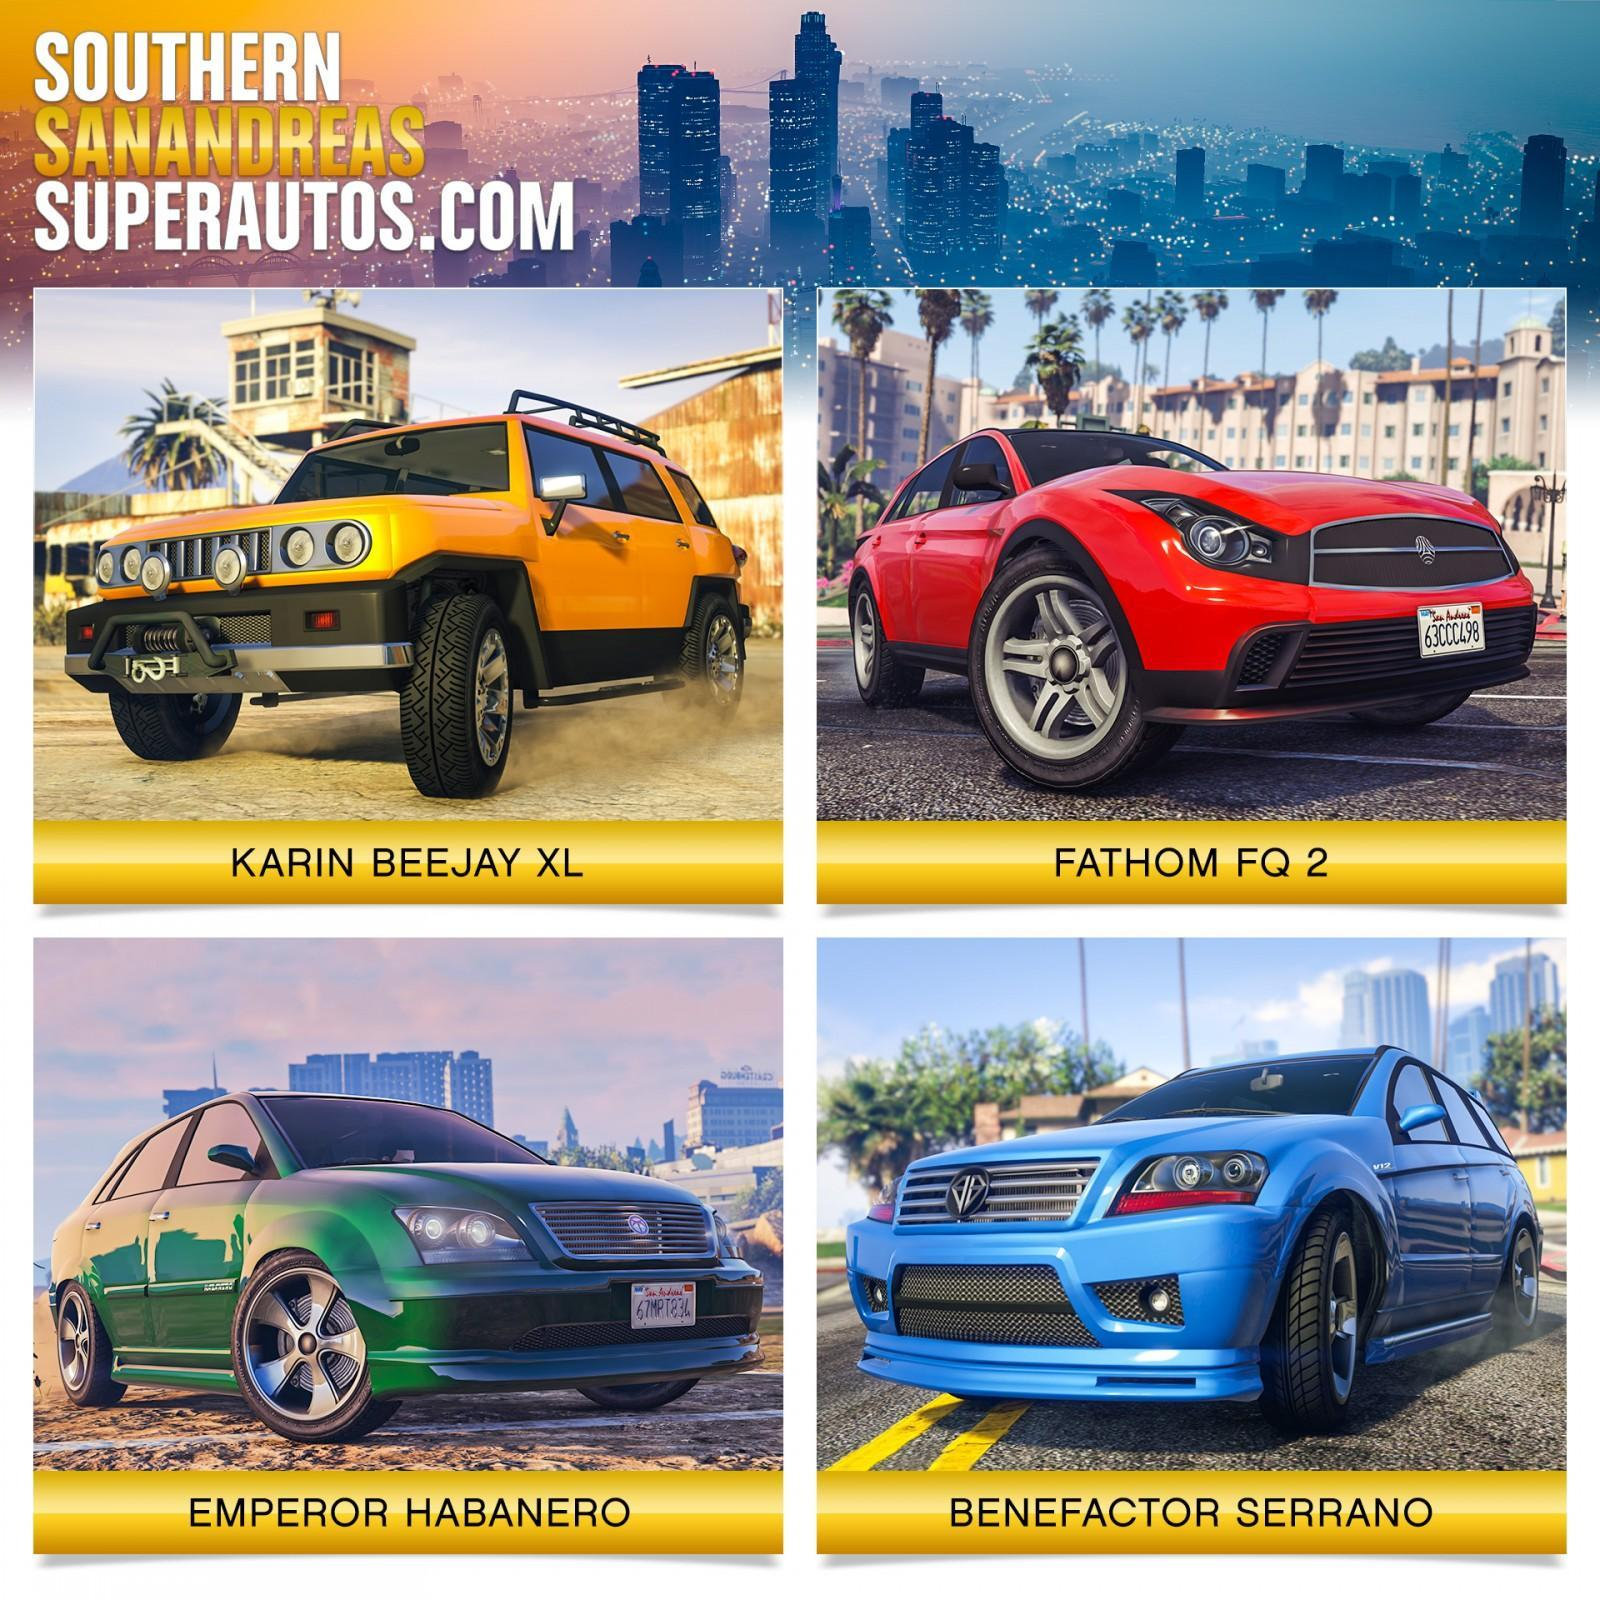 GTA Online: Southern San Andreas Super Autos Inventory